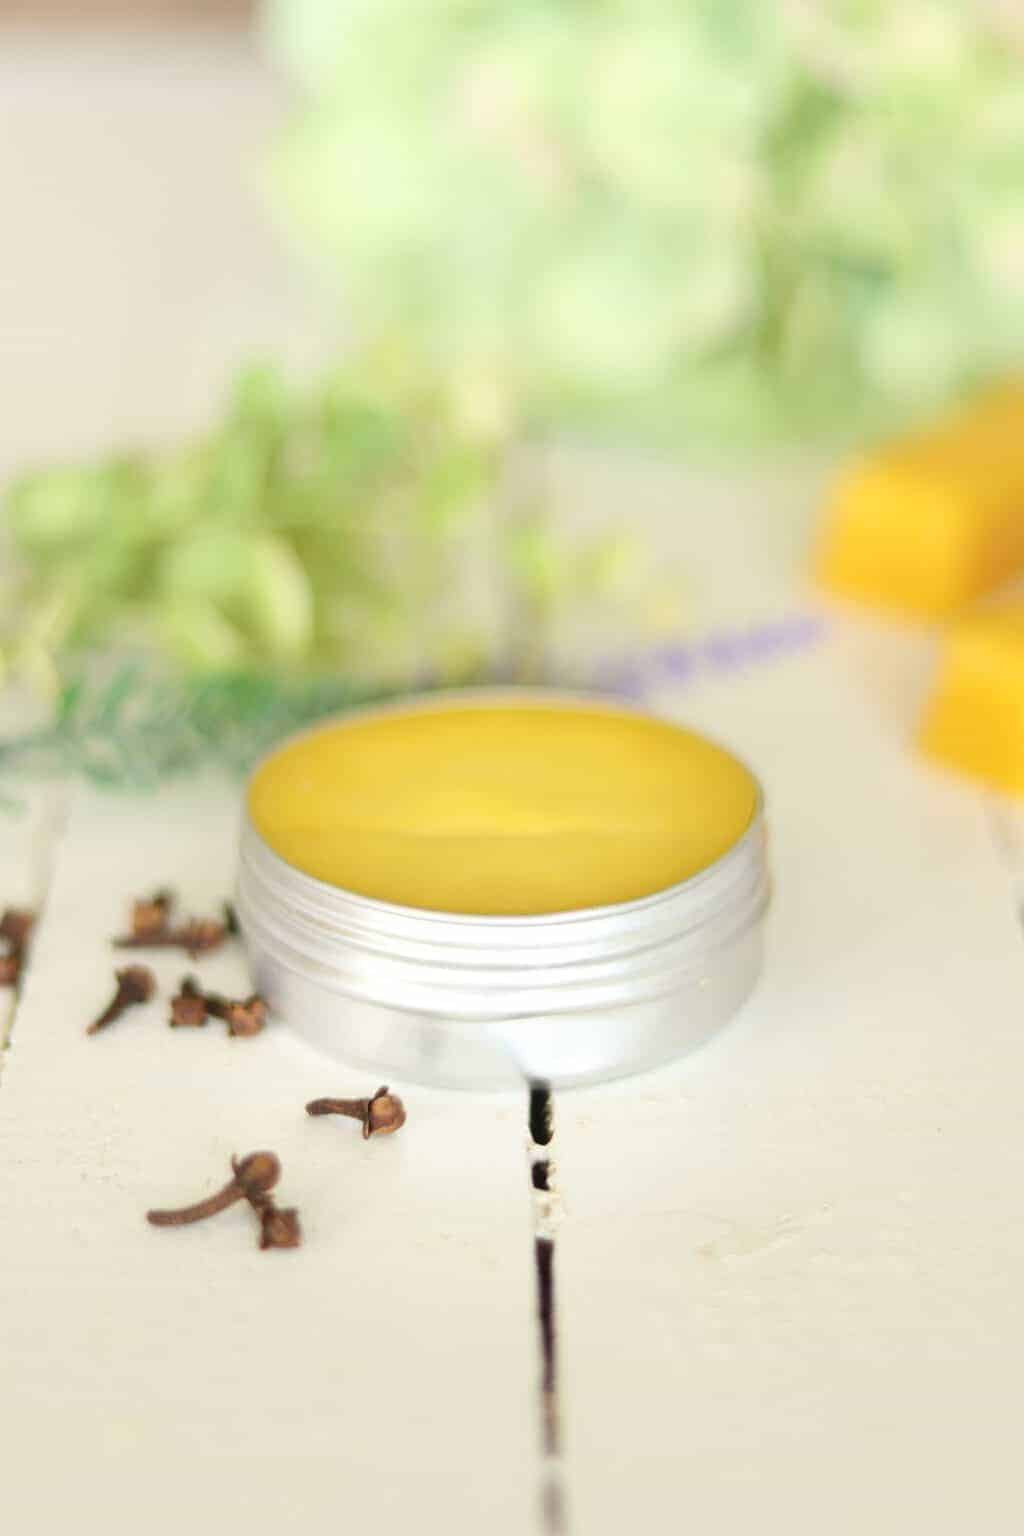 Homemade solid perfume with flowers in background.